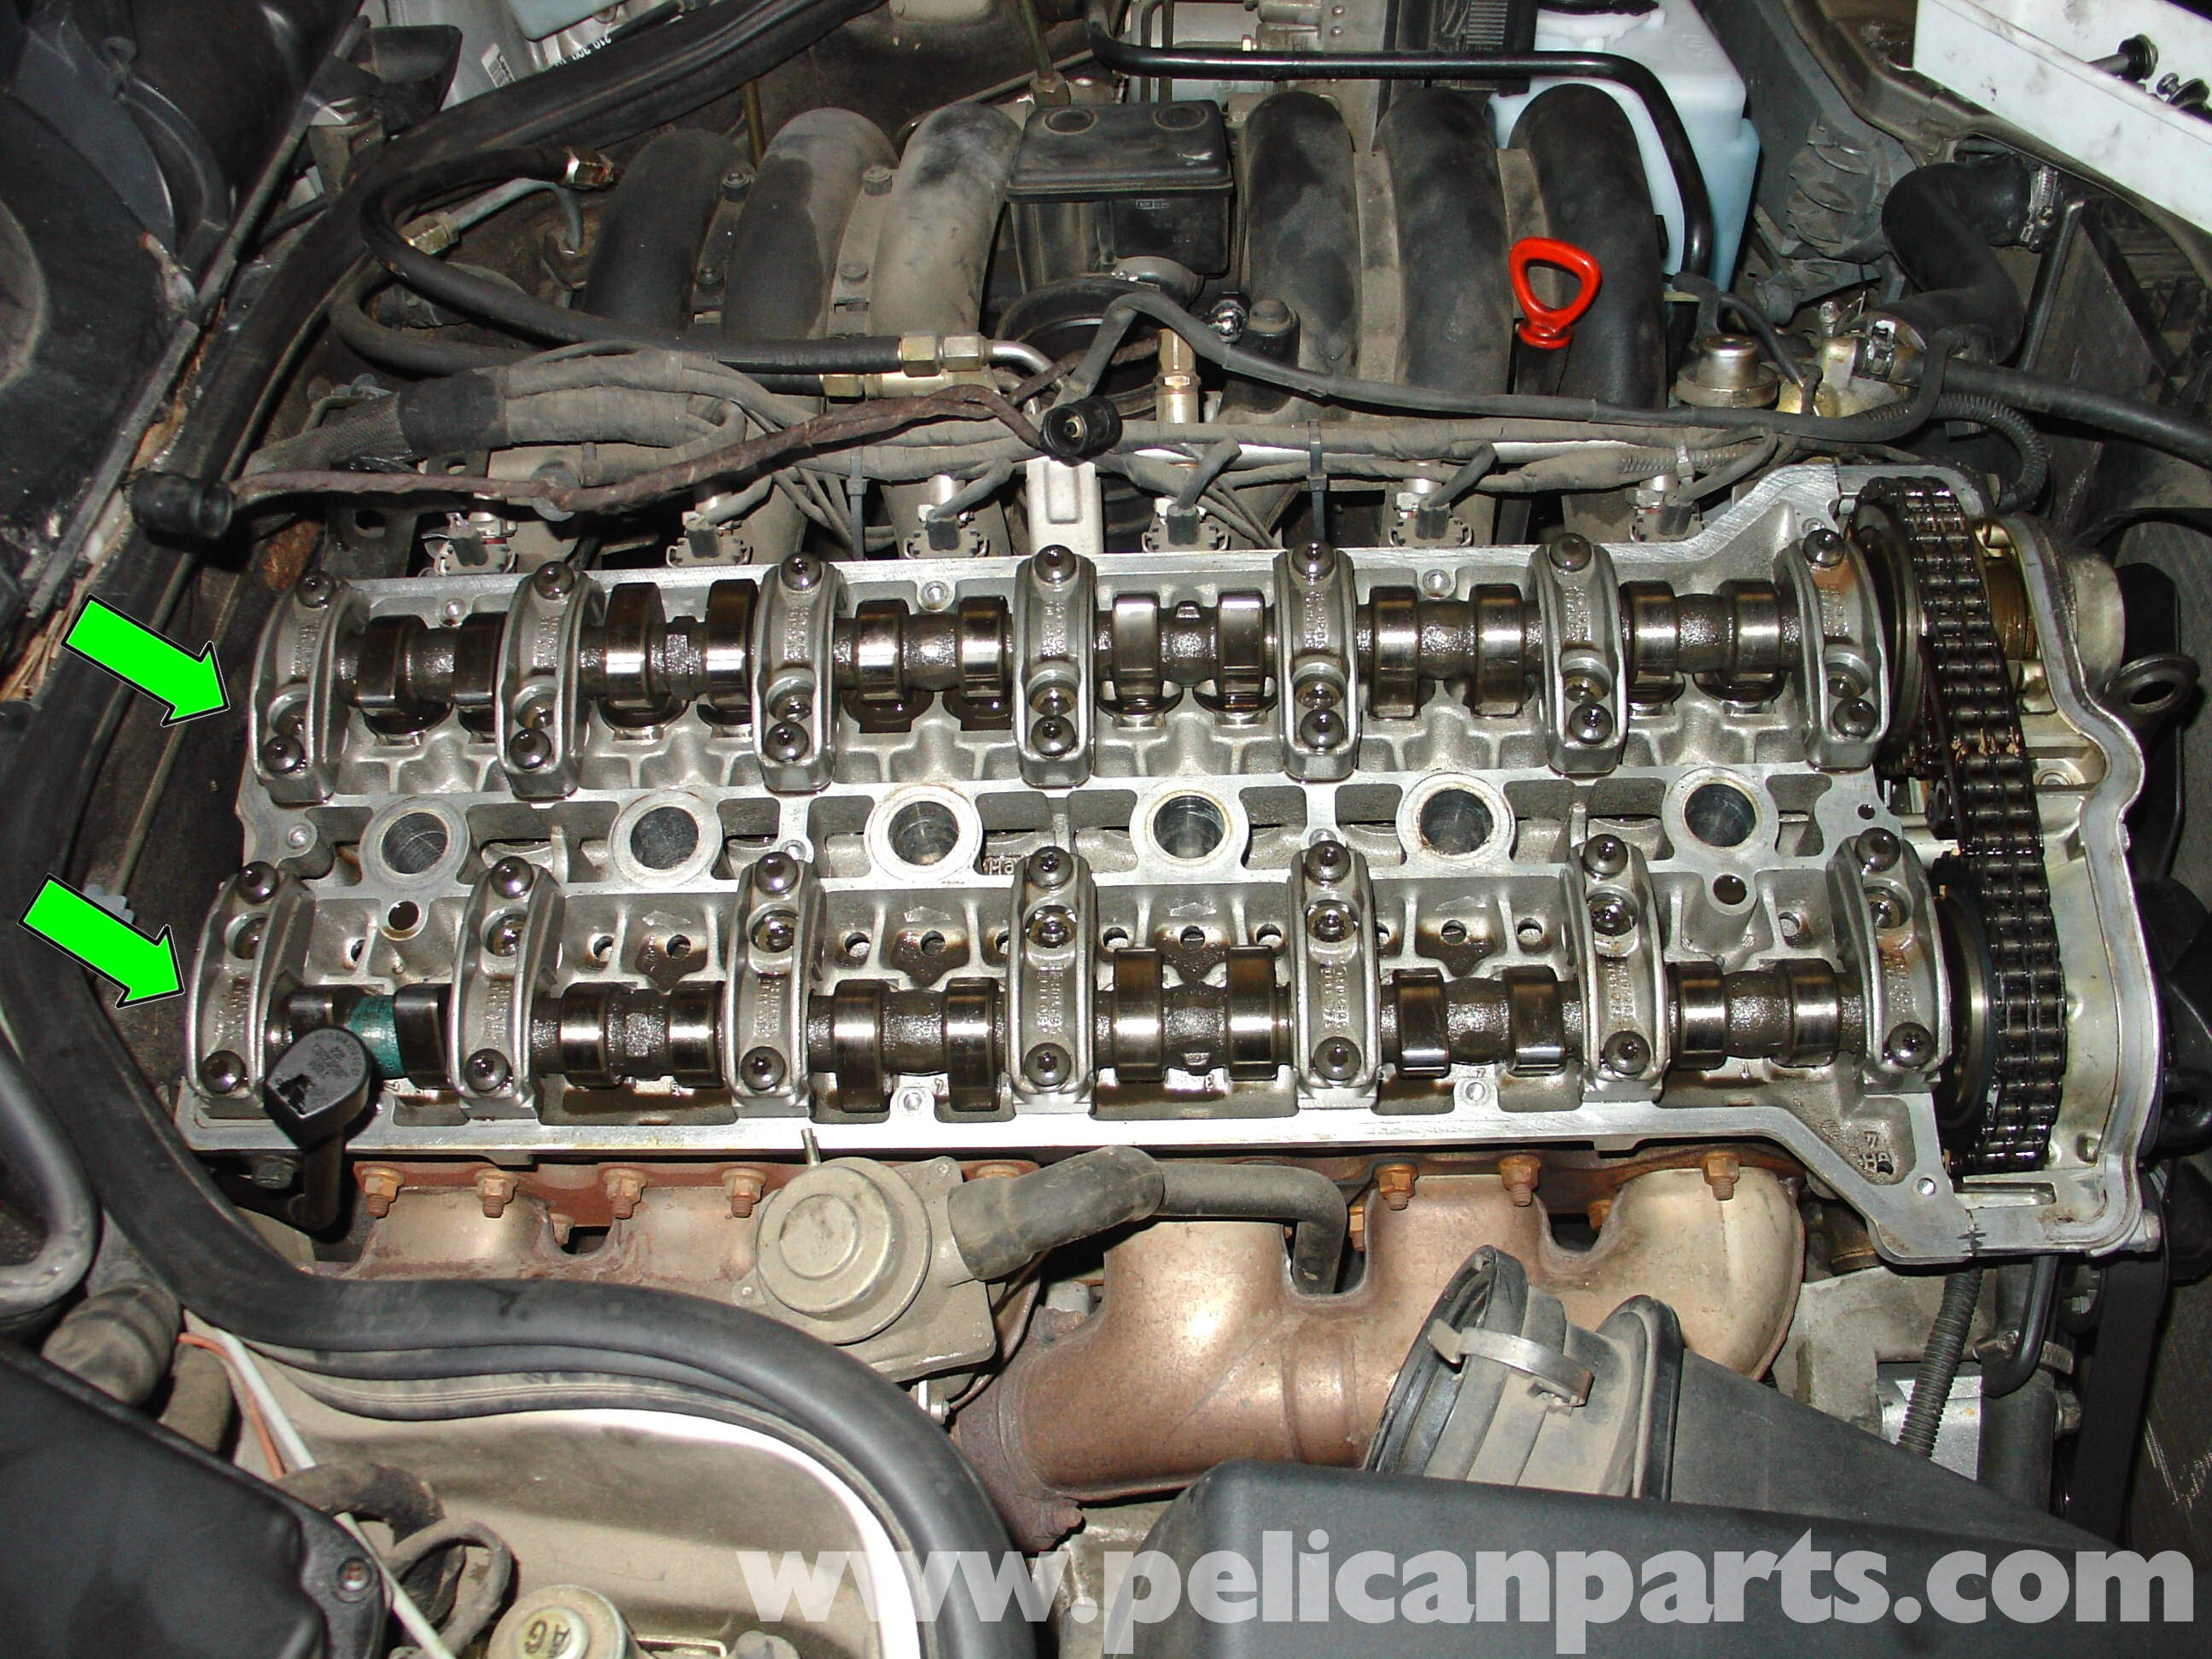 Mercedes S430 Engine Diagram Mercedes Benz W210 Fixing Mon Vacuum Leaks 1996 03 E320 E420 Of Mercedes S430 Engine Diagram